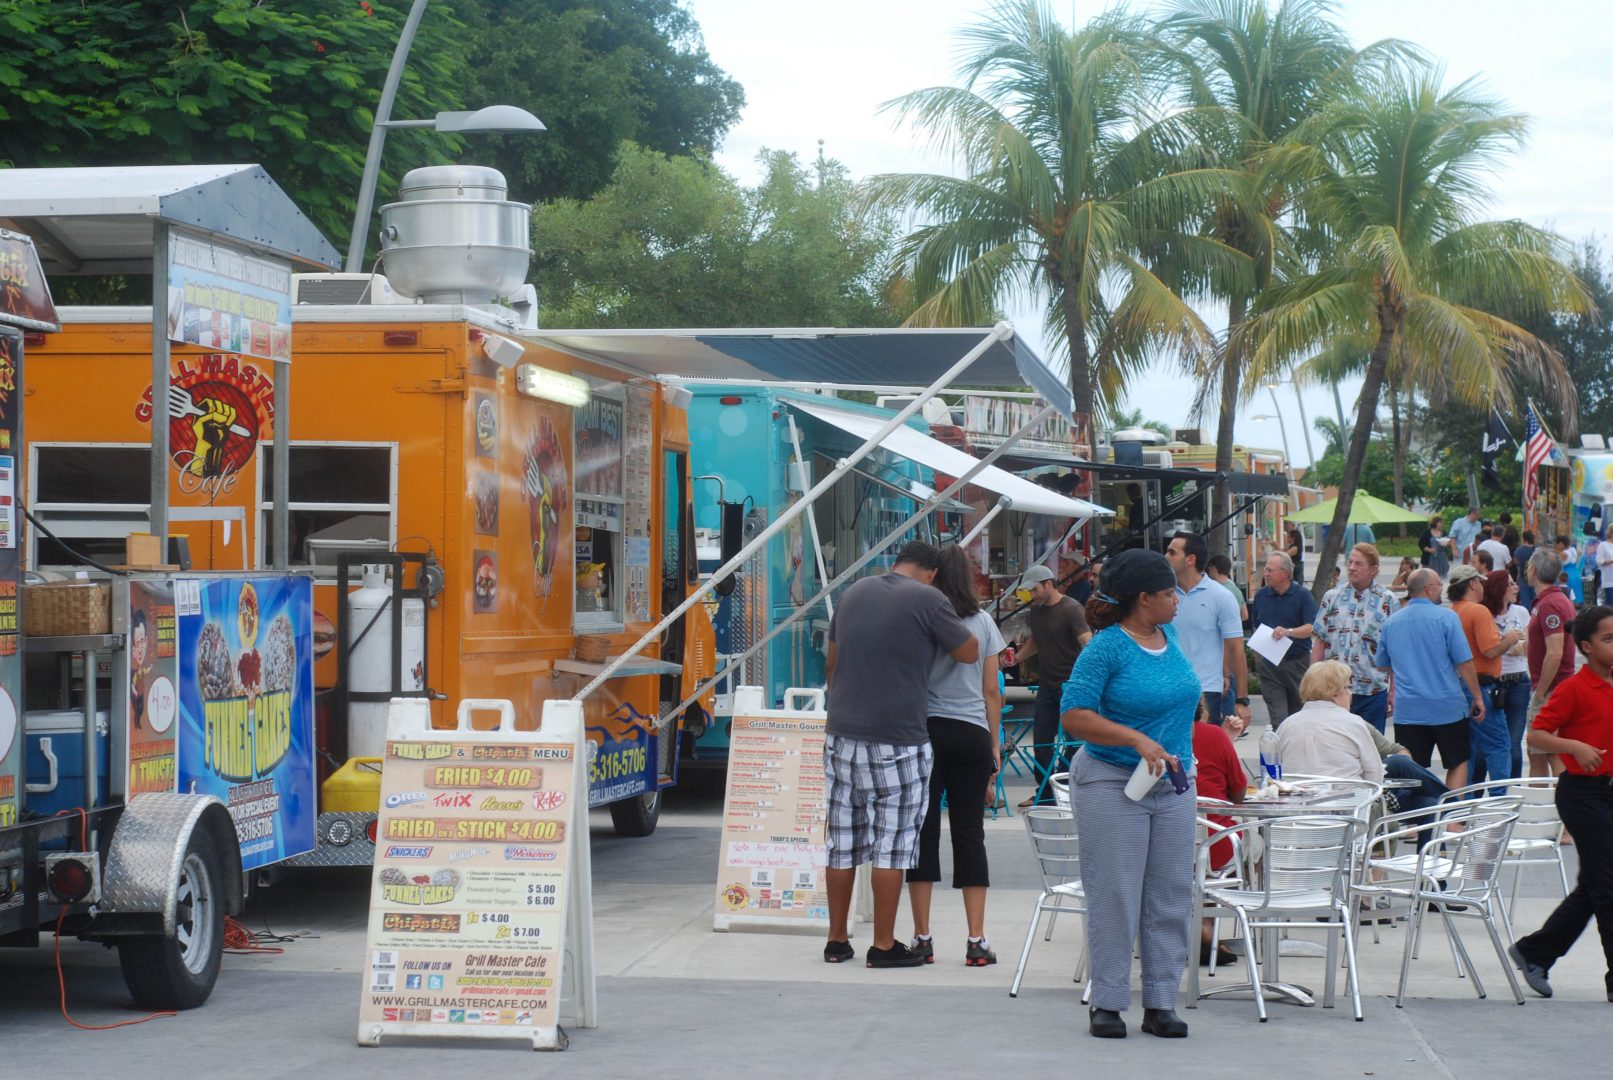 Miami Food Trucks Come To Hollywood Fl Plus The Food Truck